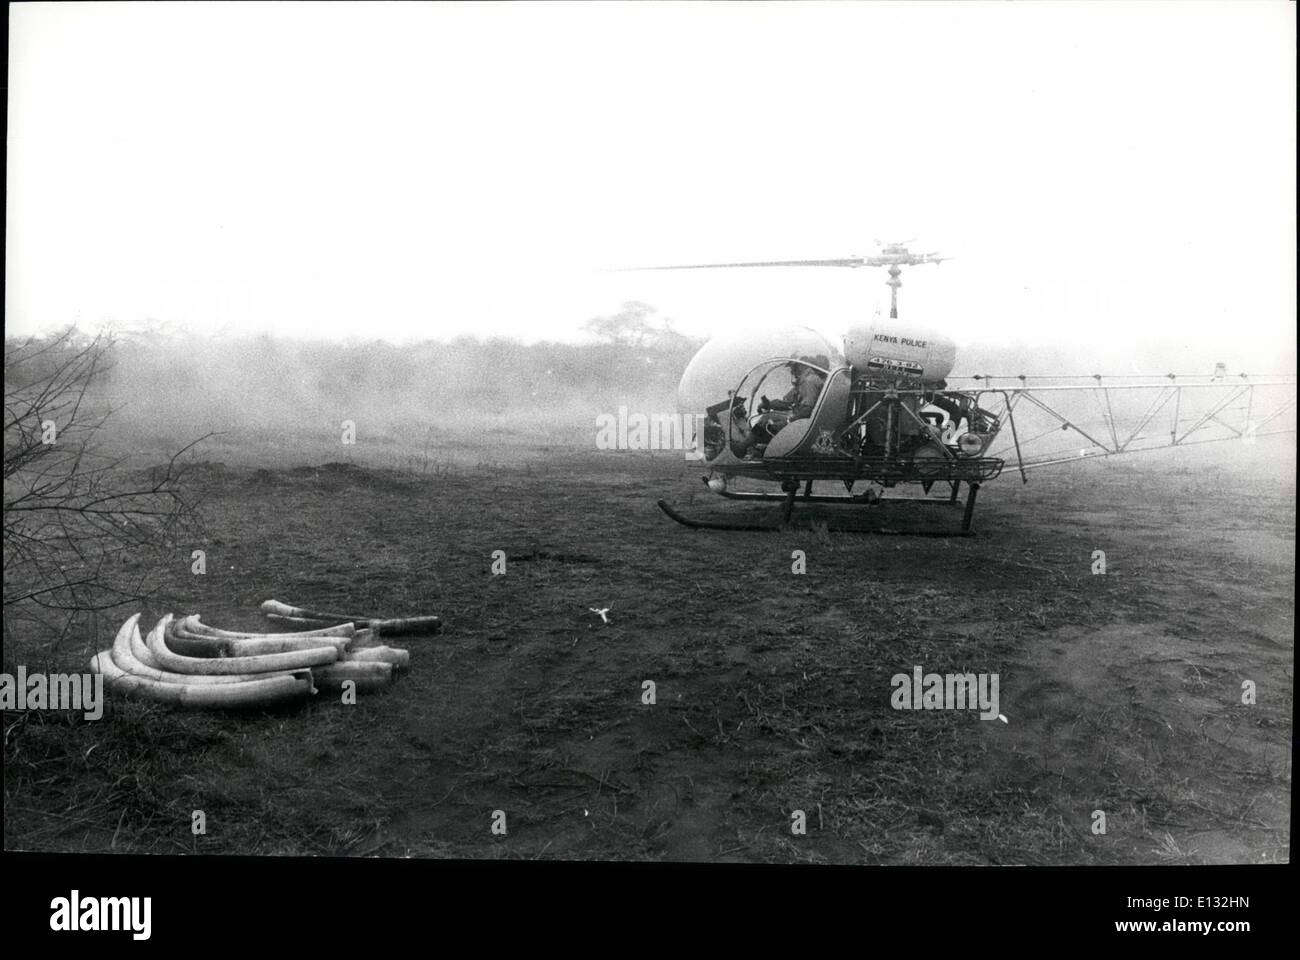 Feb. 26, 2012 - Govt. against poachers, Tsavo Natl. Pk., Kenya. The police Air Wing helicopter loaned to the National Parks takes off on a routine mission. - Stock Image